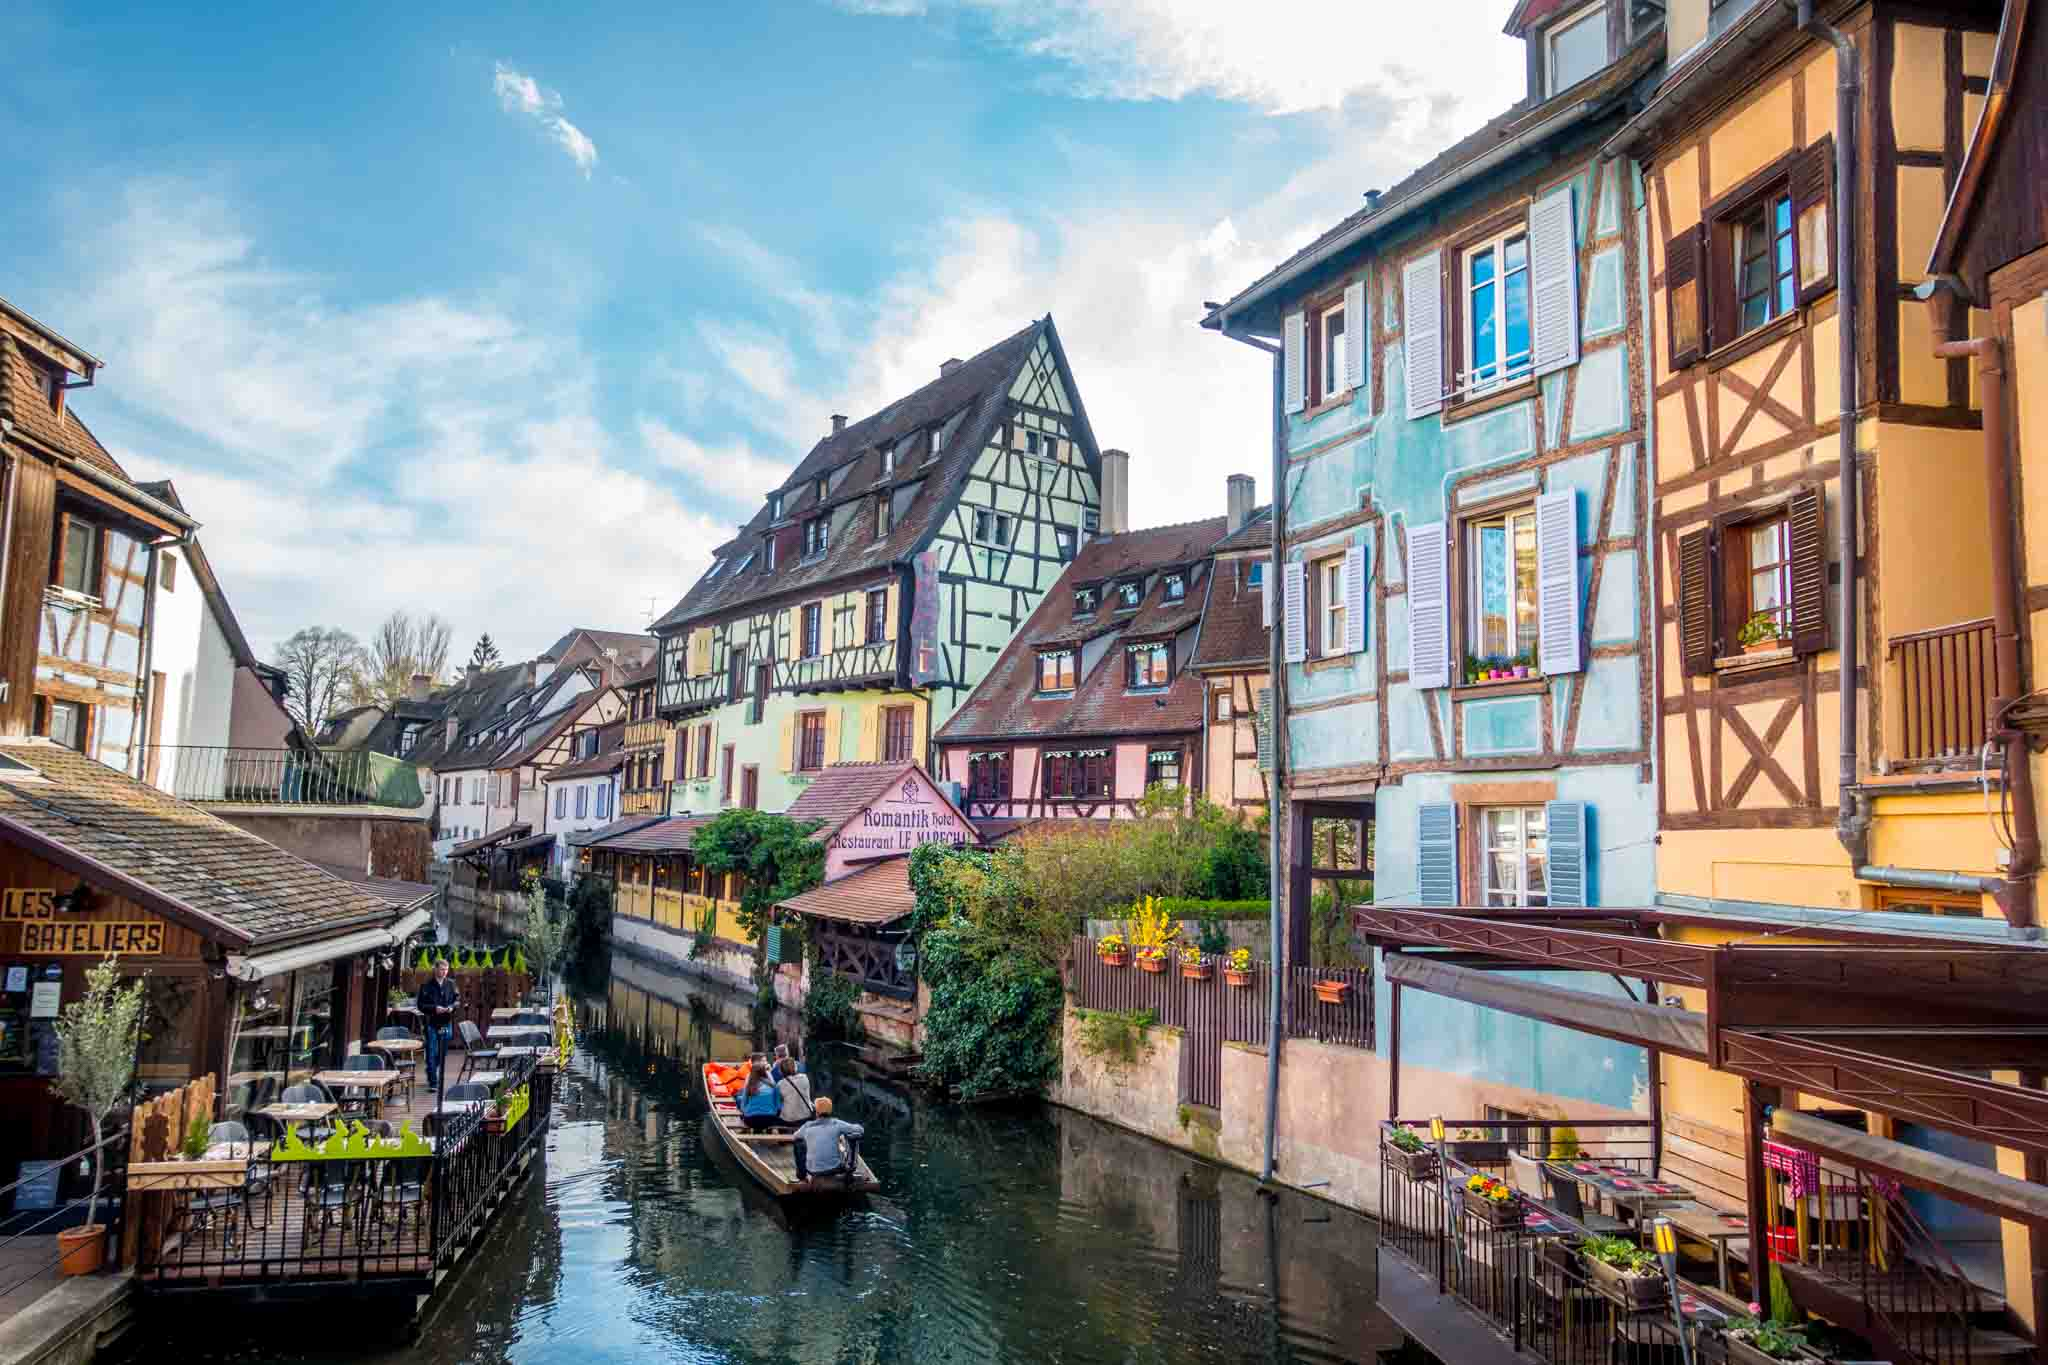 Boat floating past colorful buildings in Petite Venise in Alsace